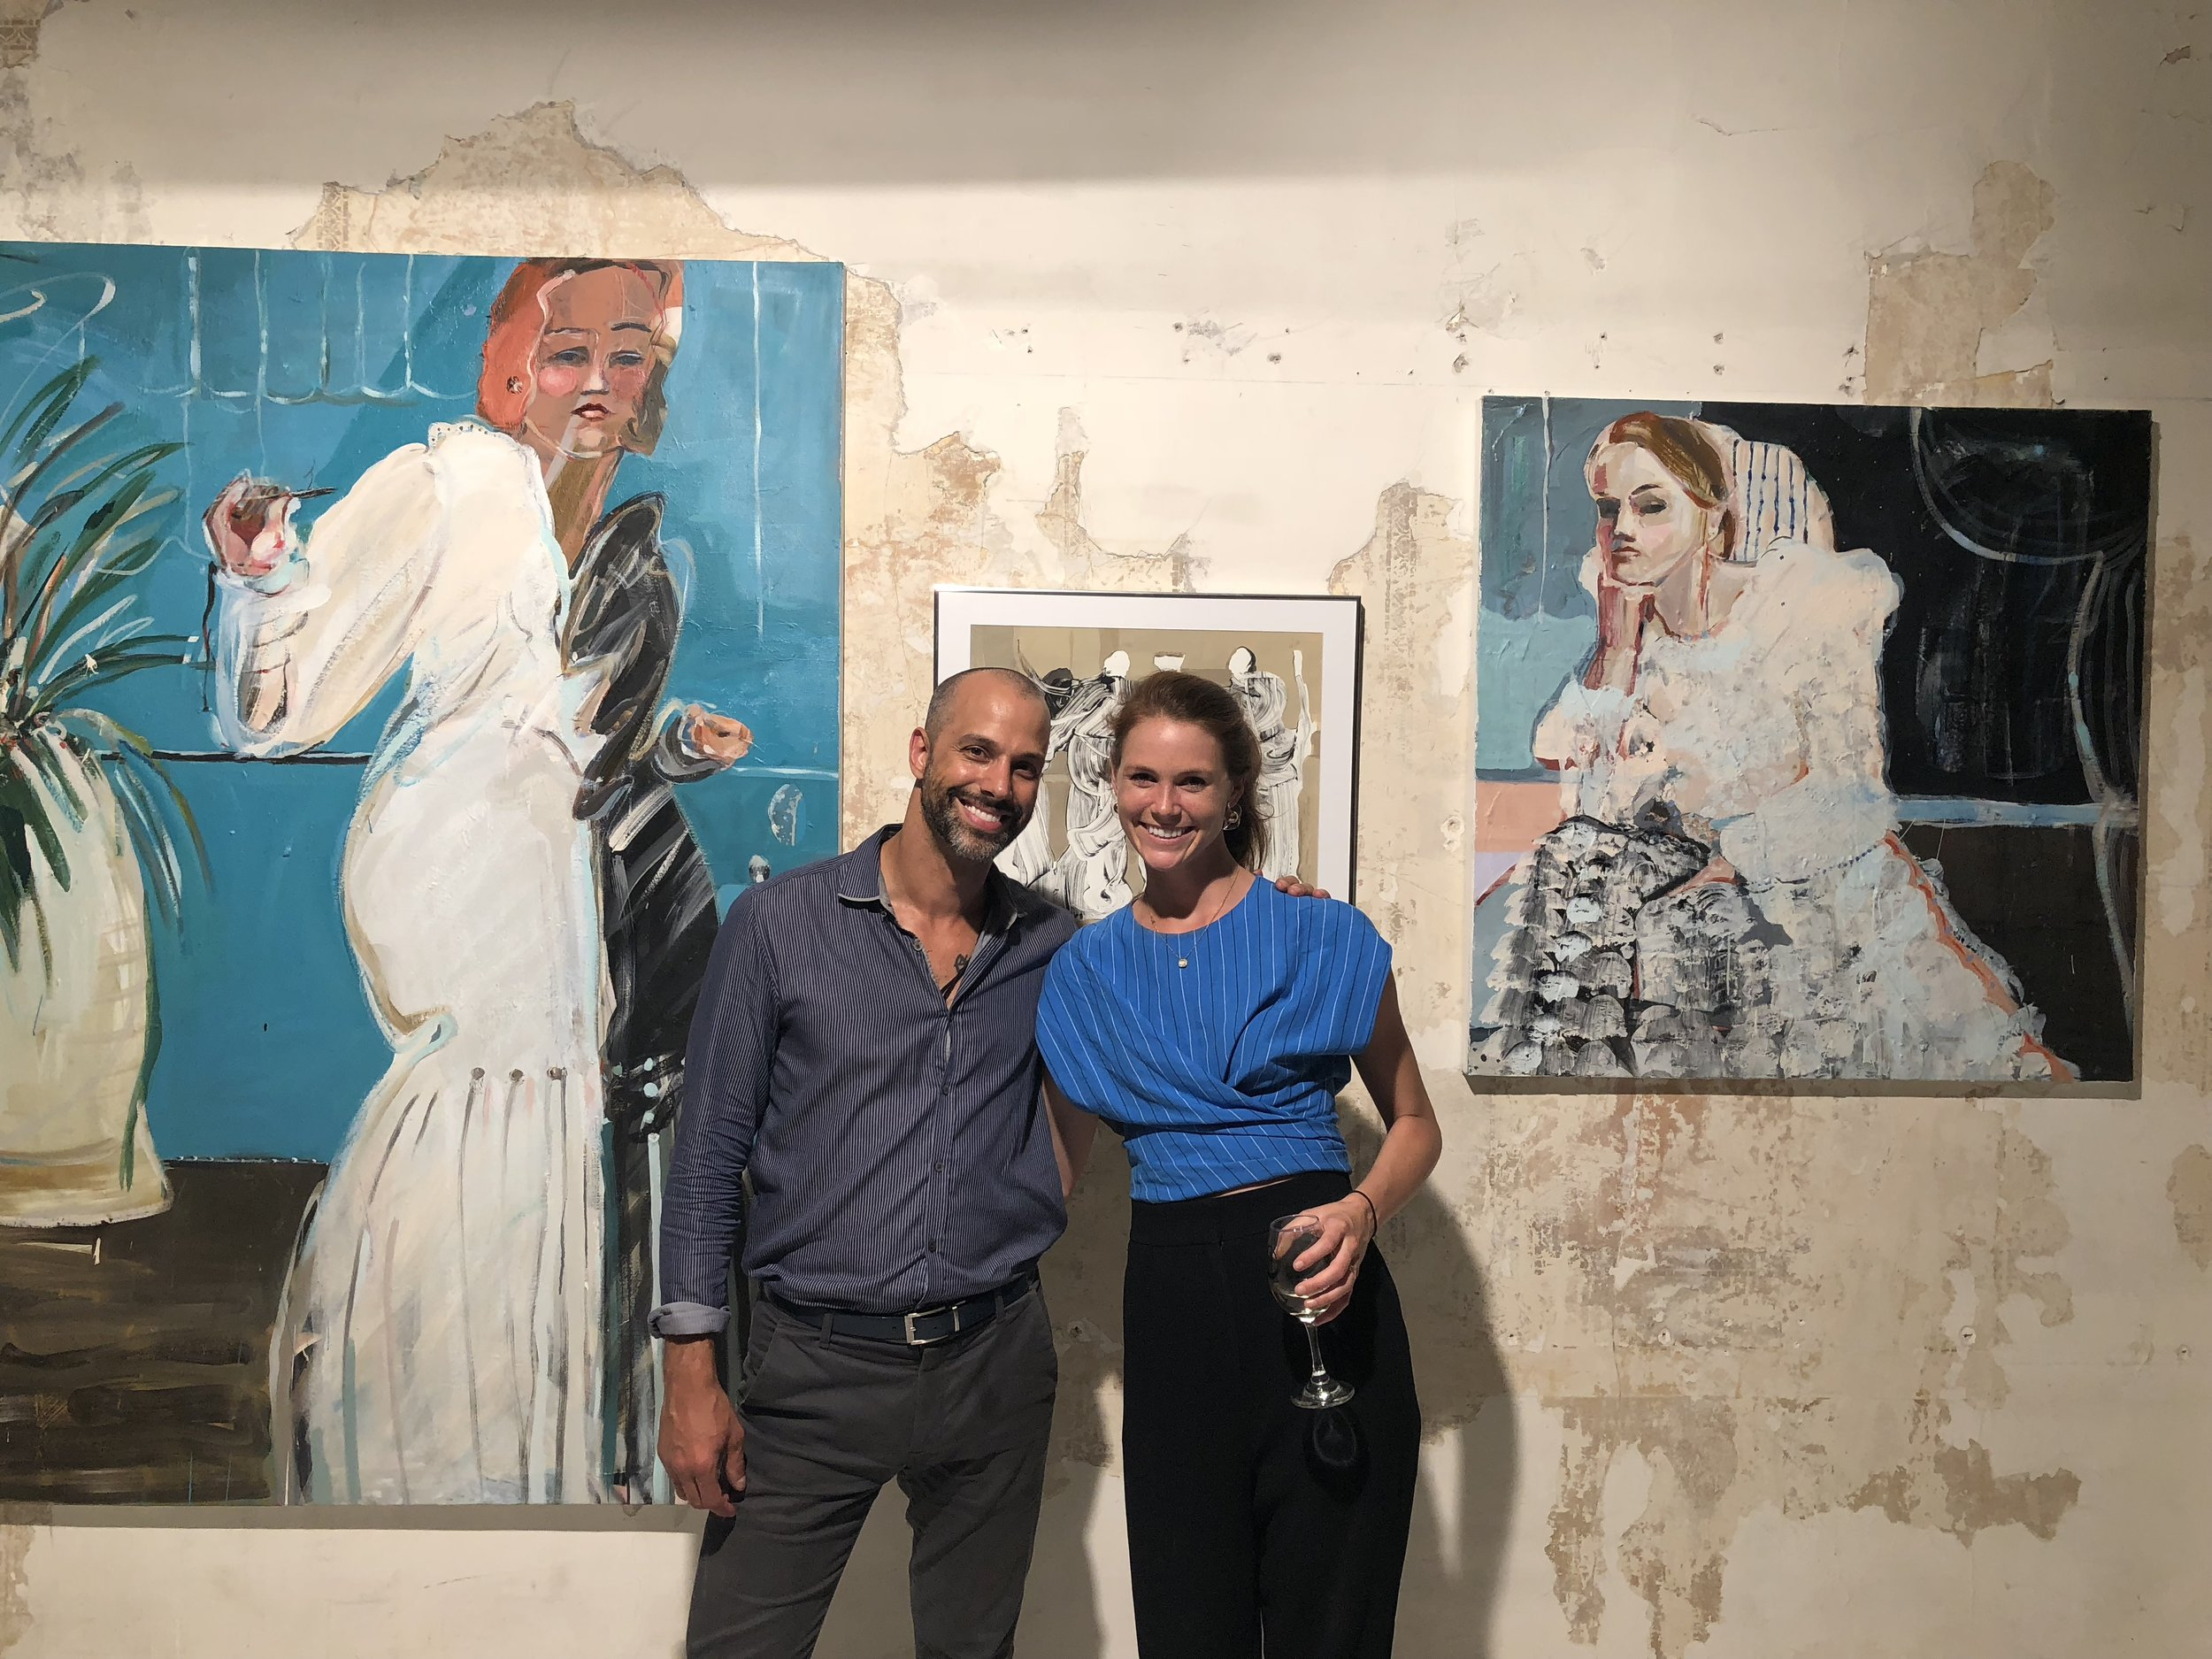 """Mary Ball with Ozymandias Wines' president and founder Rafe D'Amico, at """"Organized Chaos,"""" an Ozymandias Wines fundraiser in 2018. Mary's work is displayed on the wall behind them."""